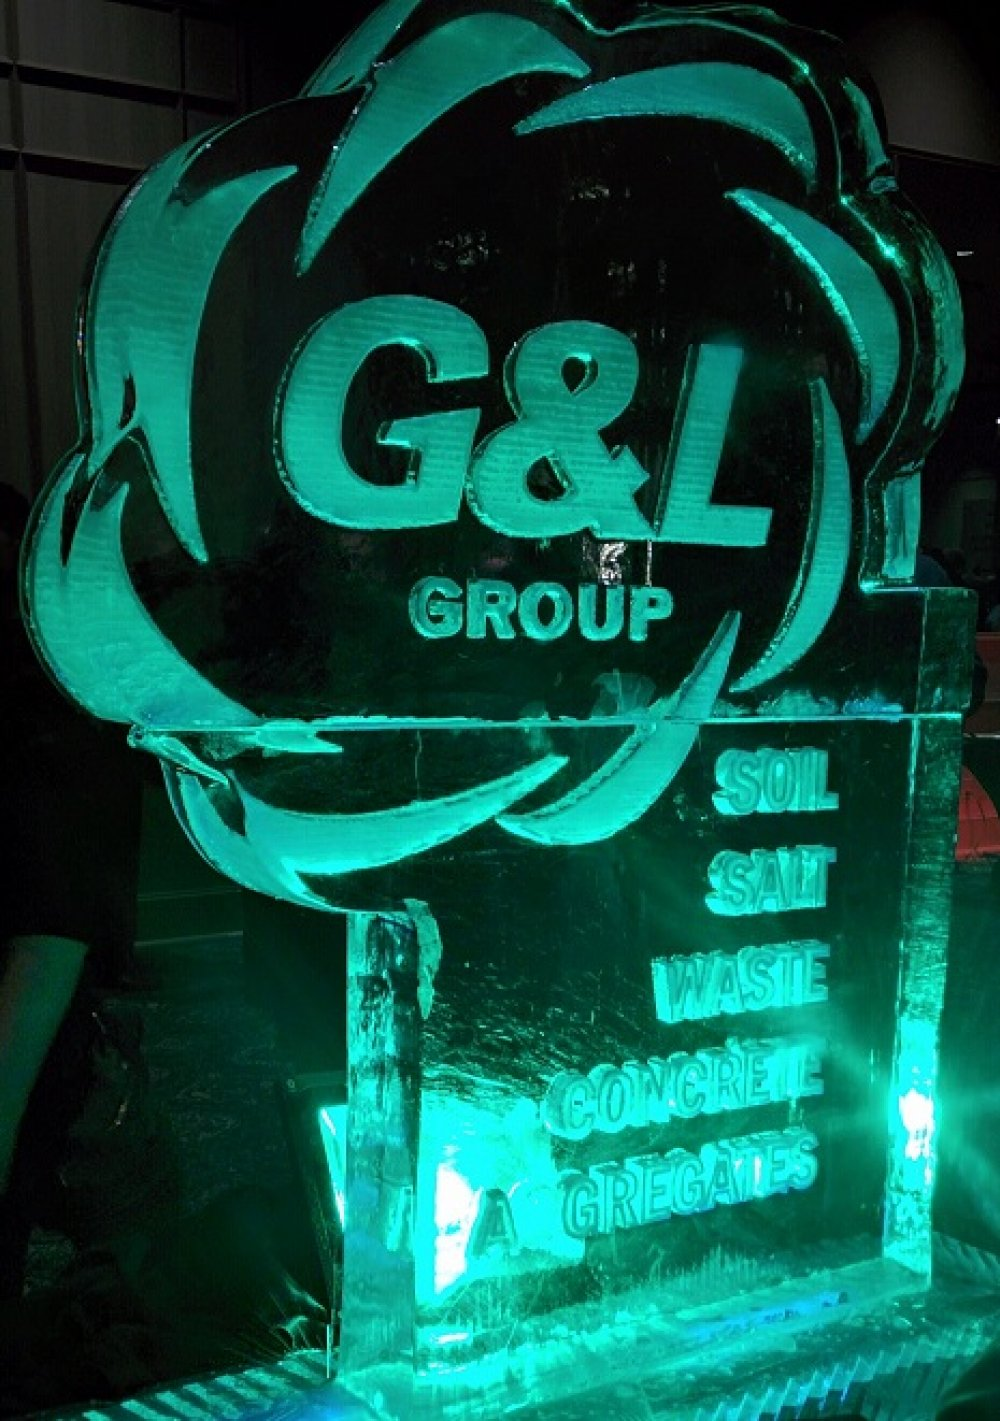 G&L Group Logo Ice Sculpture